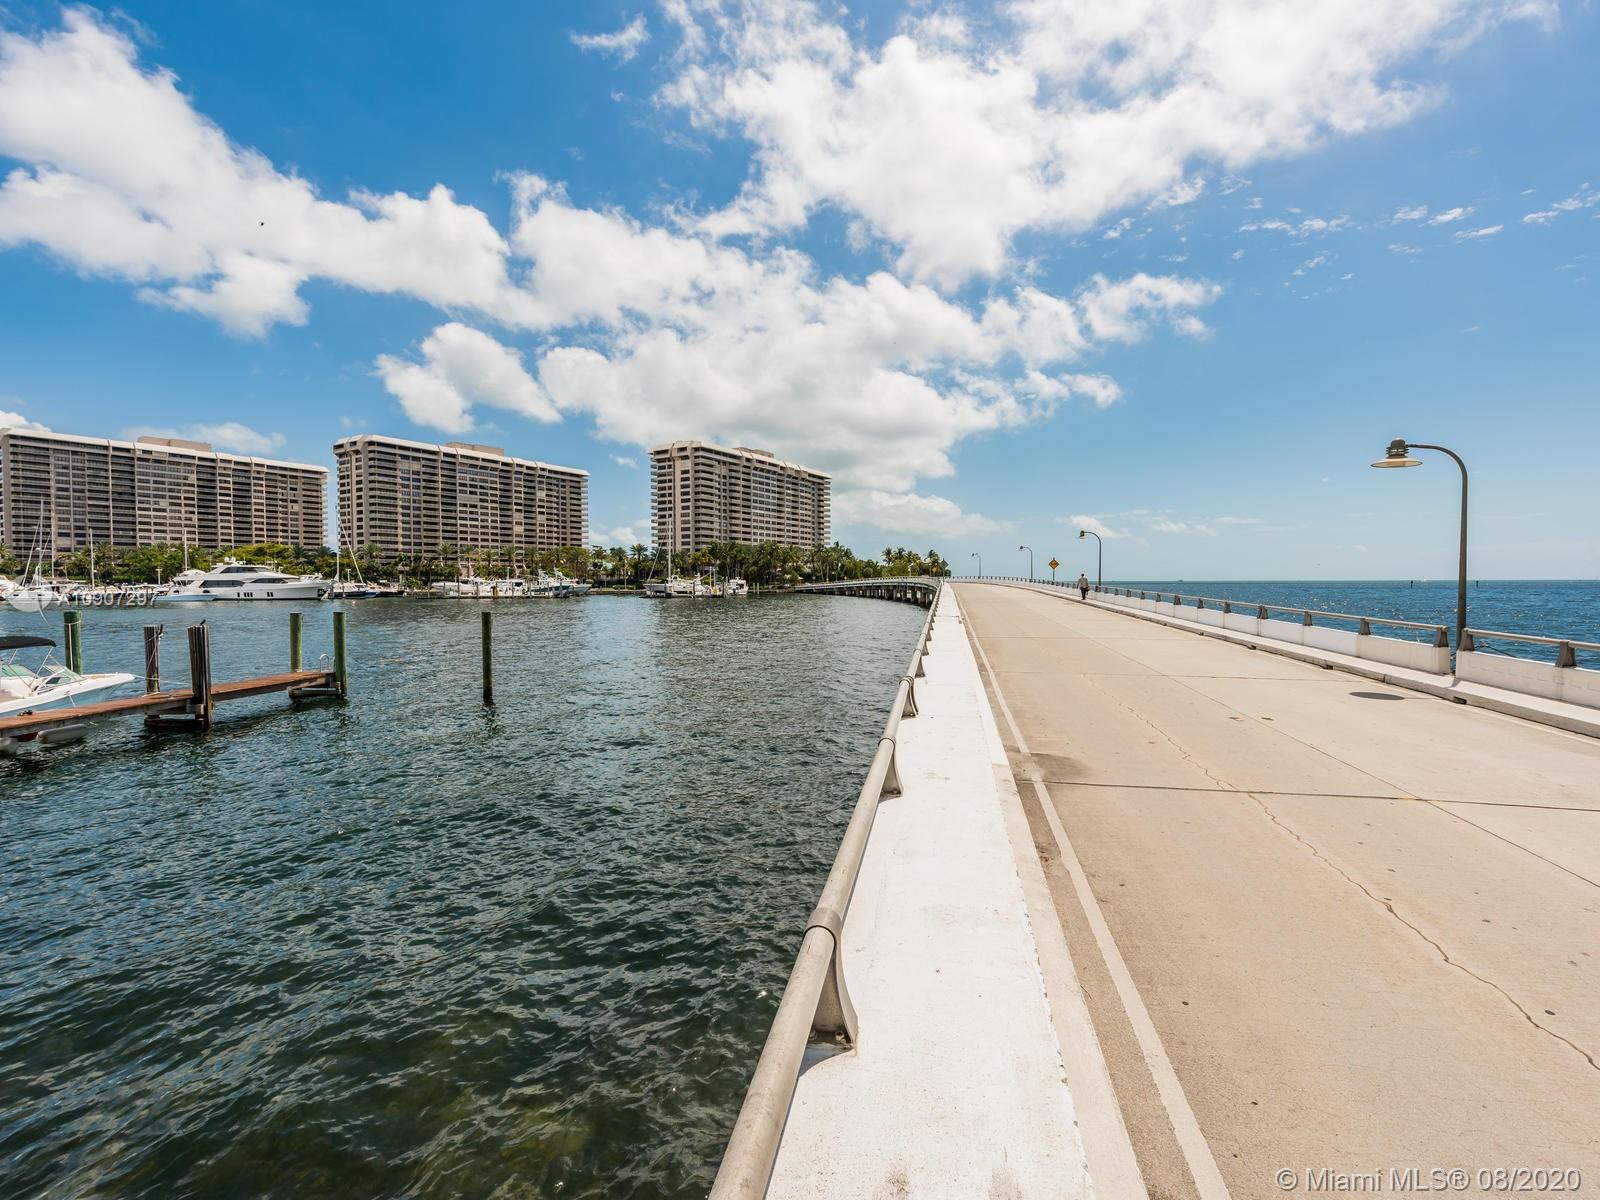 Live in a resort!! Grove Isle is resort living at it's best! Beautiful bay and city views!  This is a sizable unit that features  2 bedroom, 2 bath,  lots of natural light, and plenty space, large closets and storage.